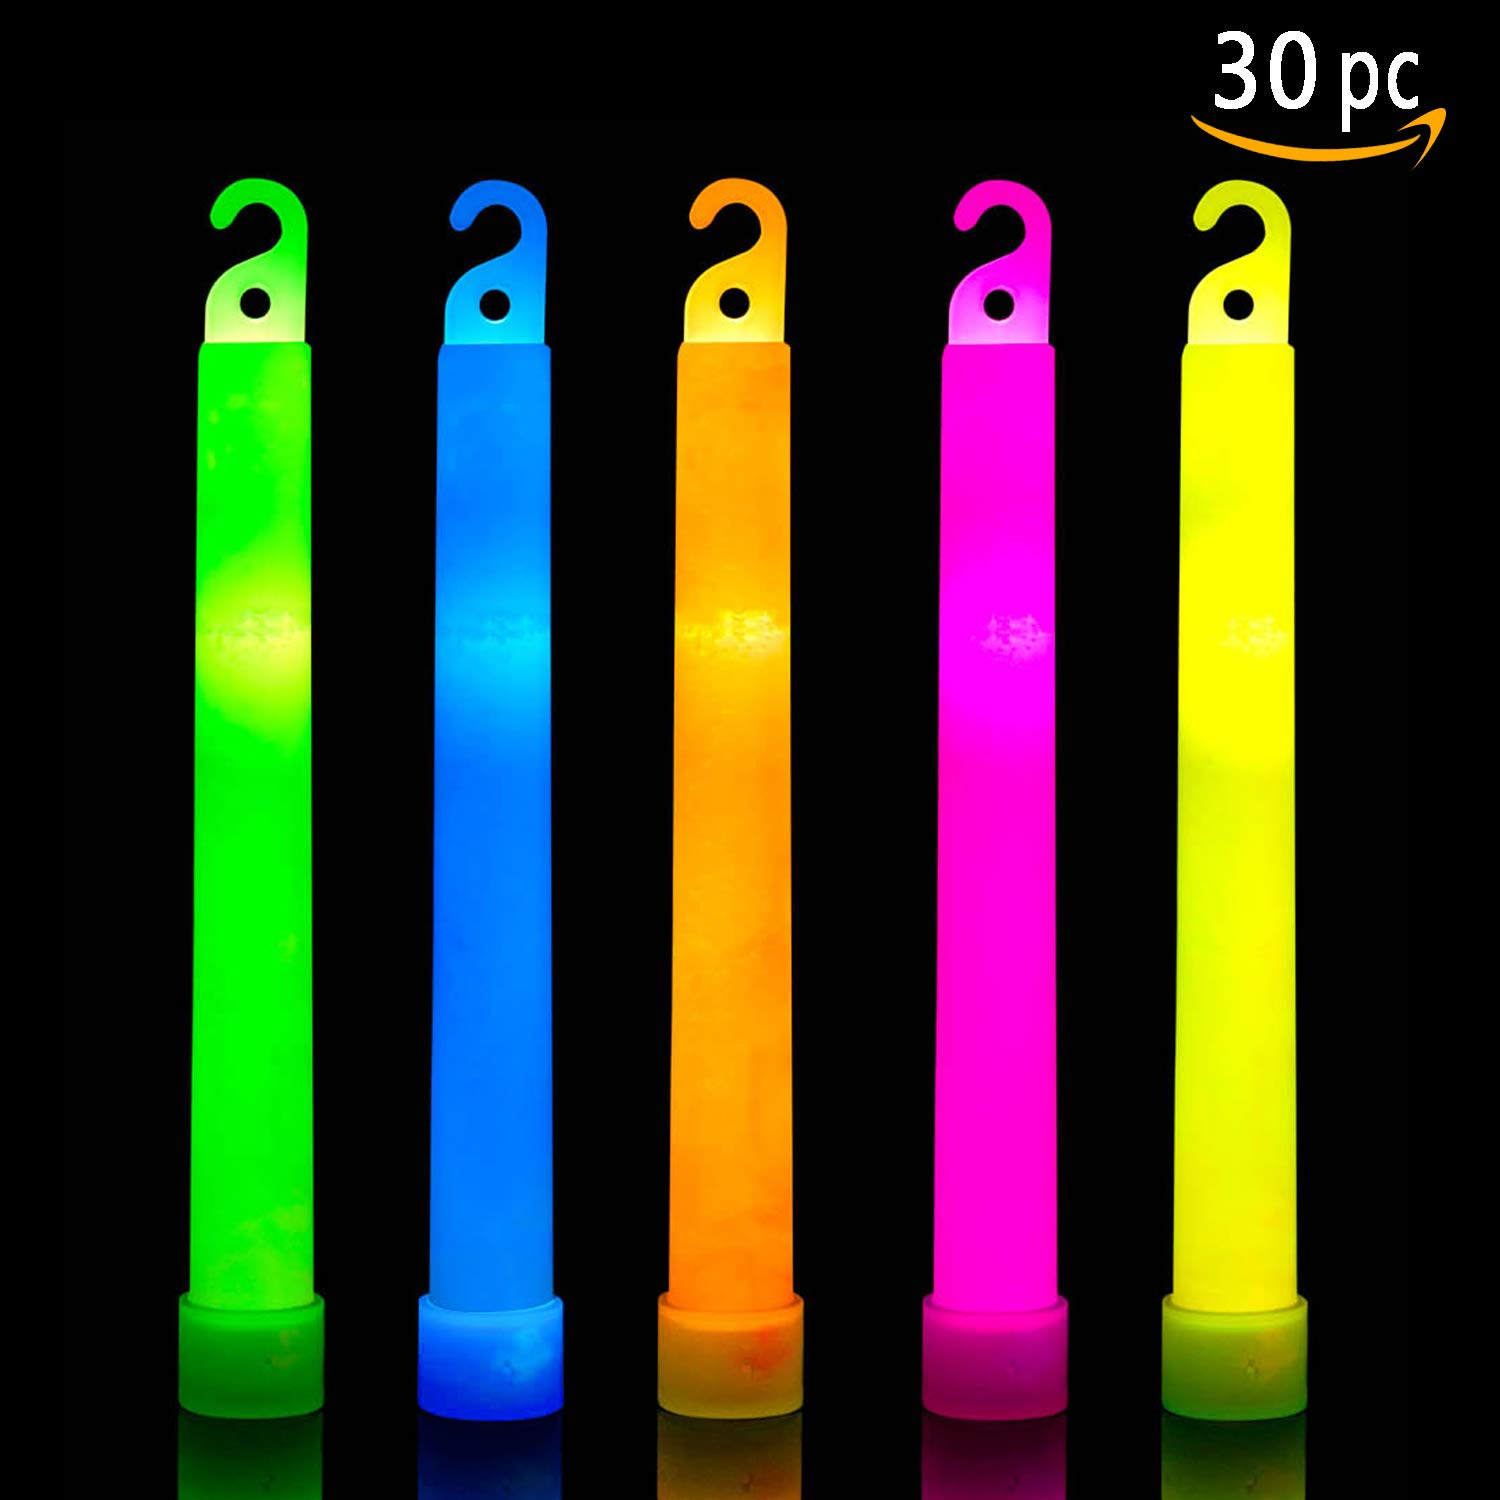 30 Ultra Bright Glow Sticks Plus 30 Party Strings - Total 60 Pcs - Bulk Pack Industrial Grade - 6 Inch Waterproof Glow Stick - Glow Light With 12 Hour Duration - Mixed Colors - Bend, Shake To Activate by HSGUS